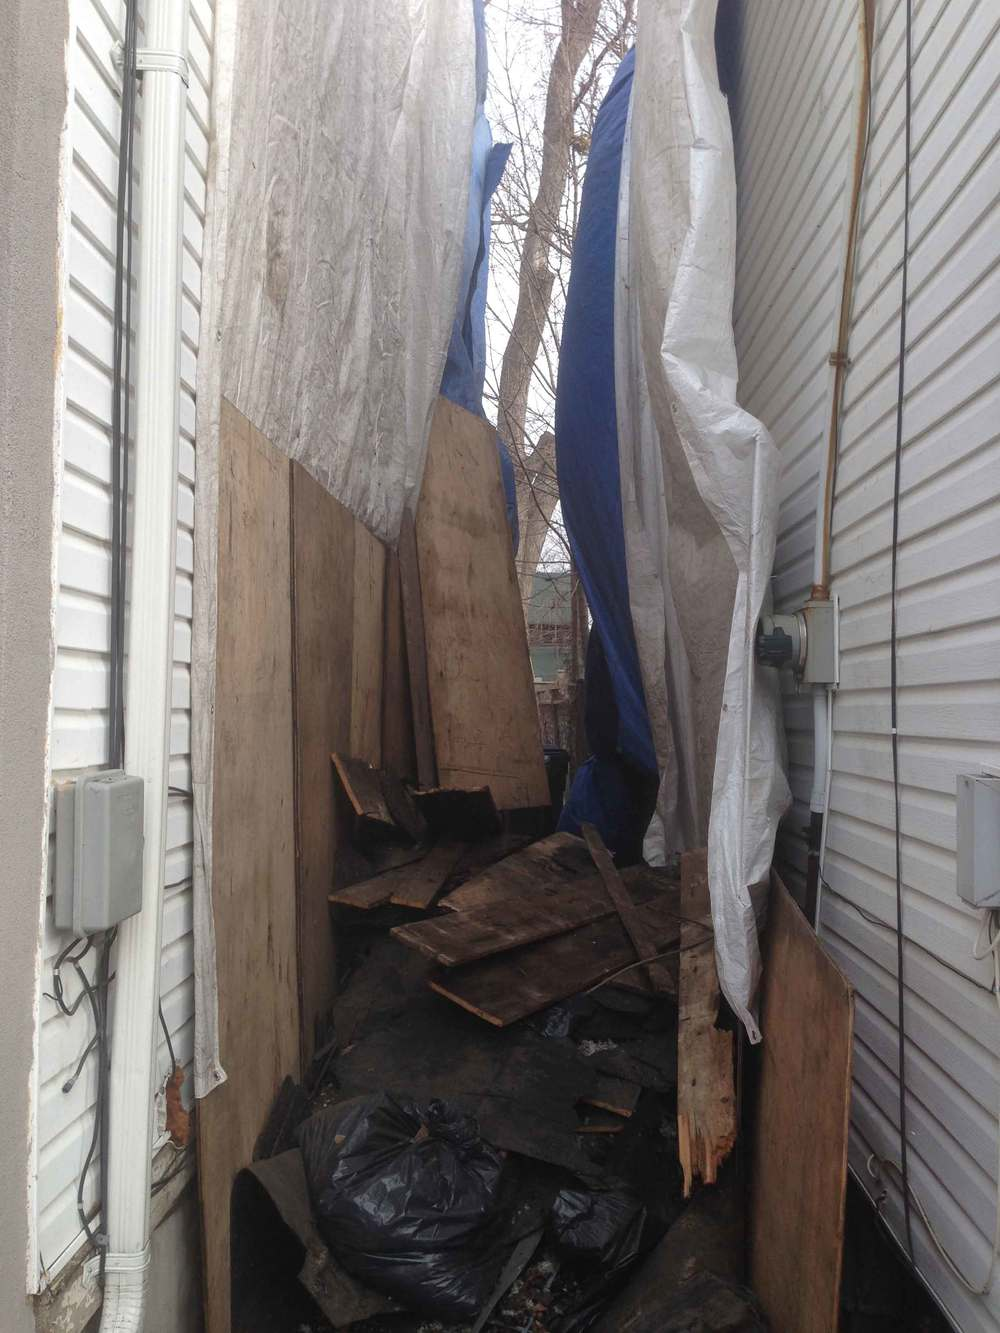 Protection of houses from falling debris.